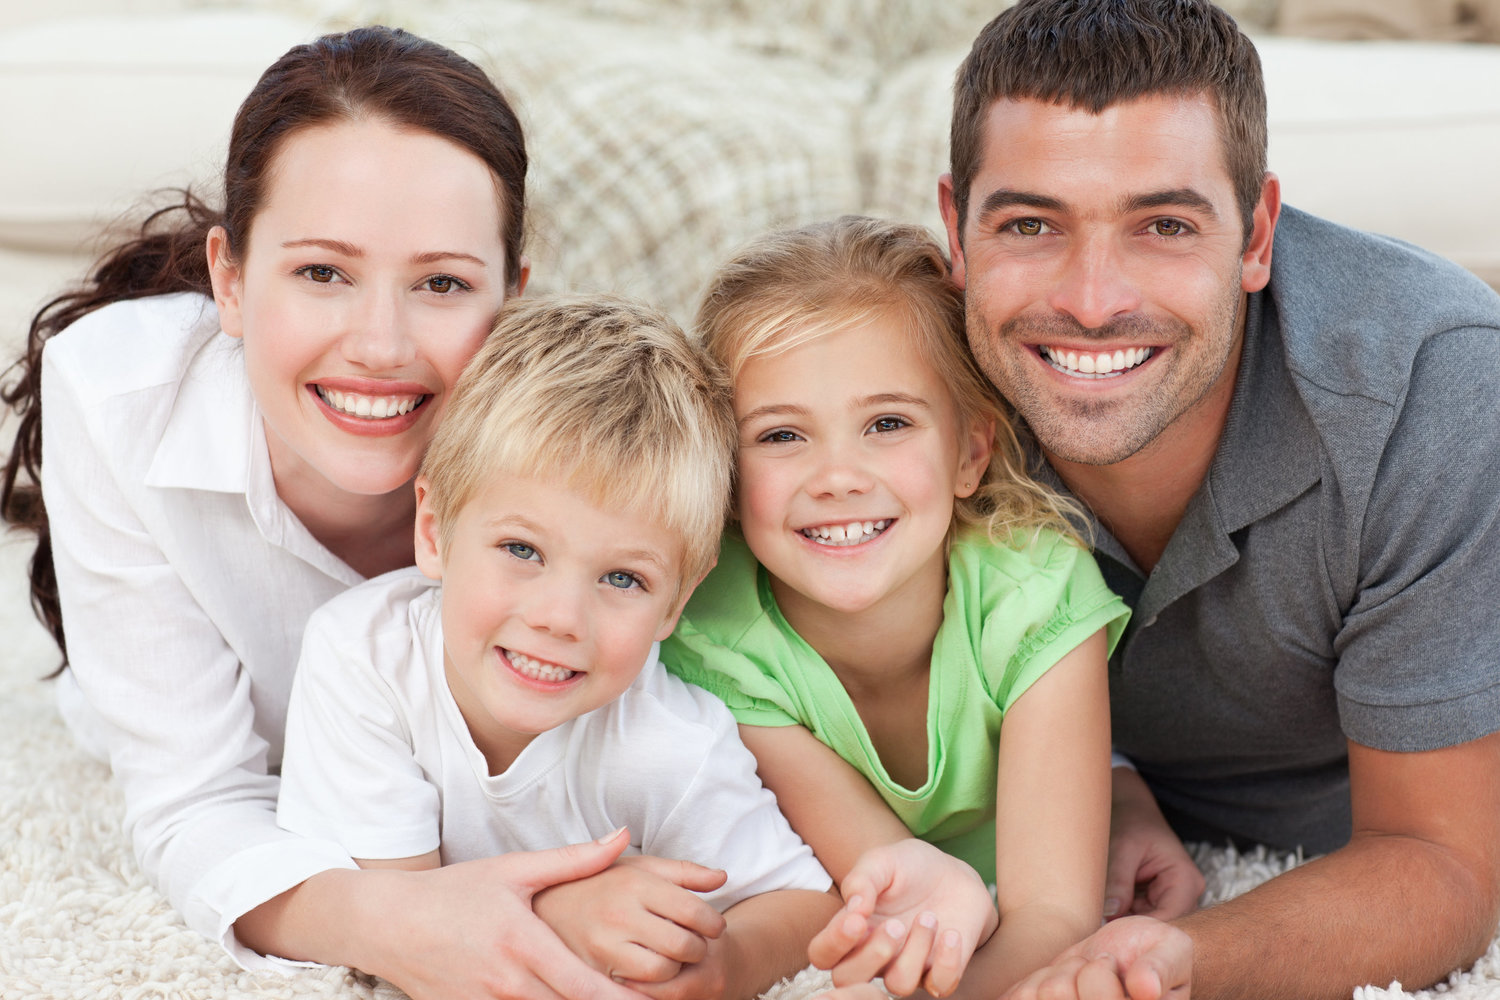 Copy of Portrait of a smiling family in the carpet